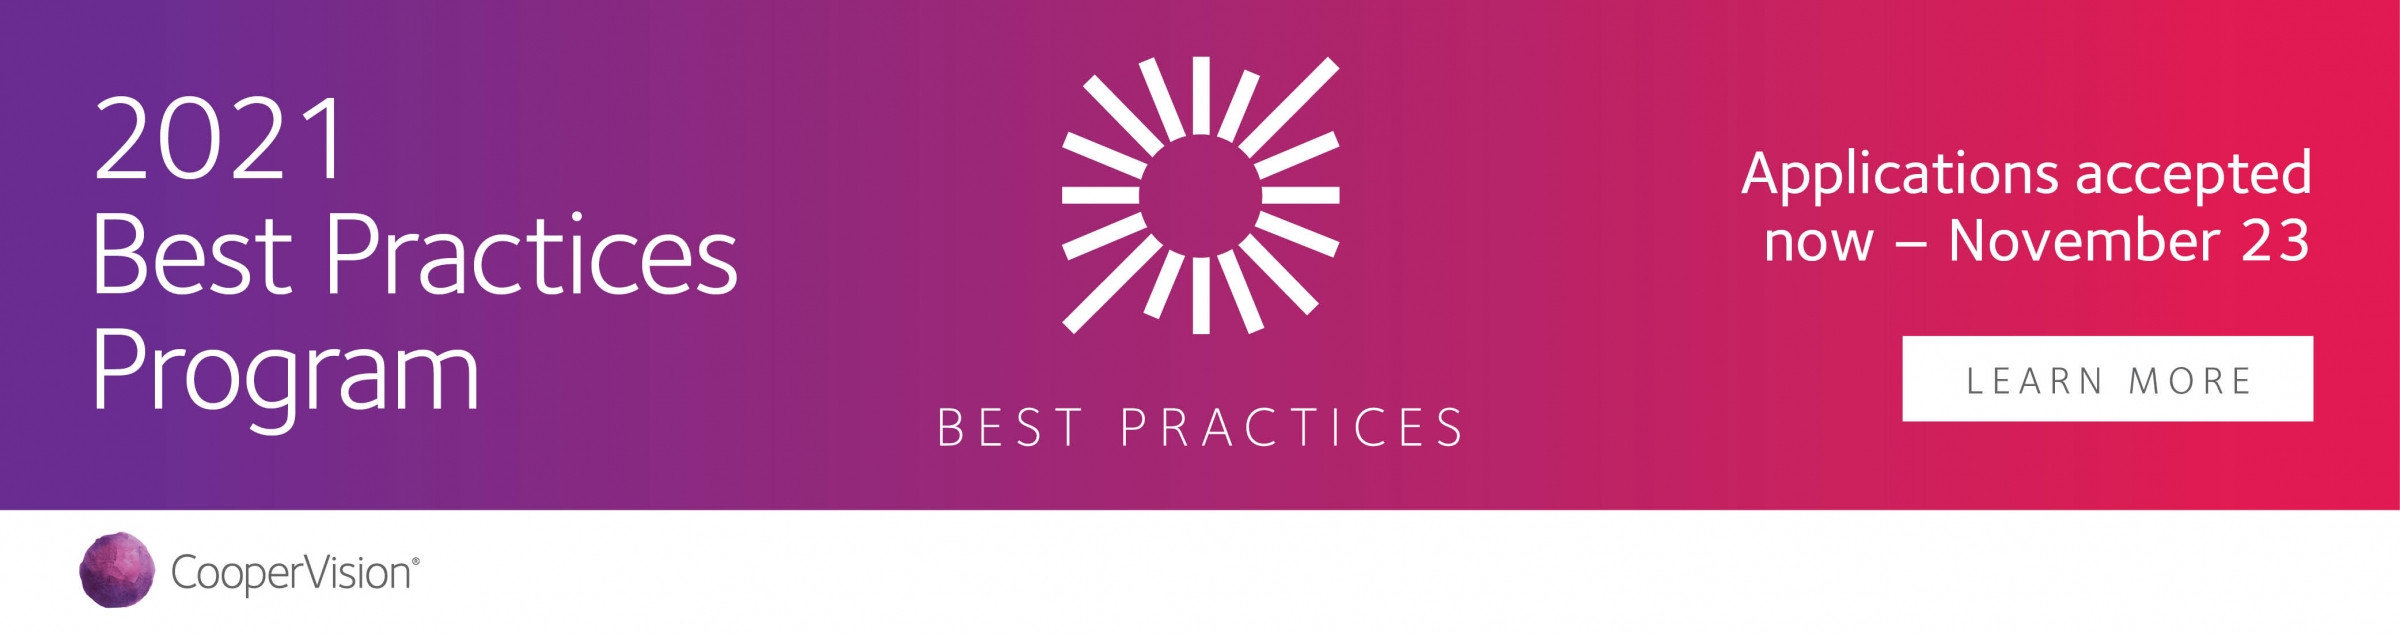 CooperVision 2021 Best Practices